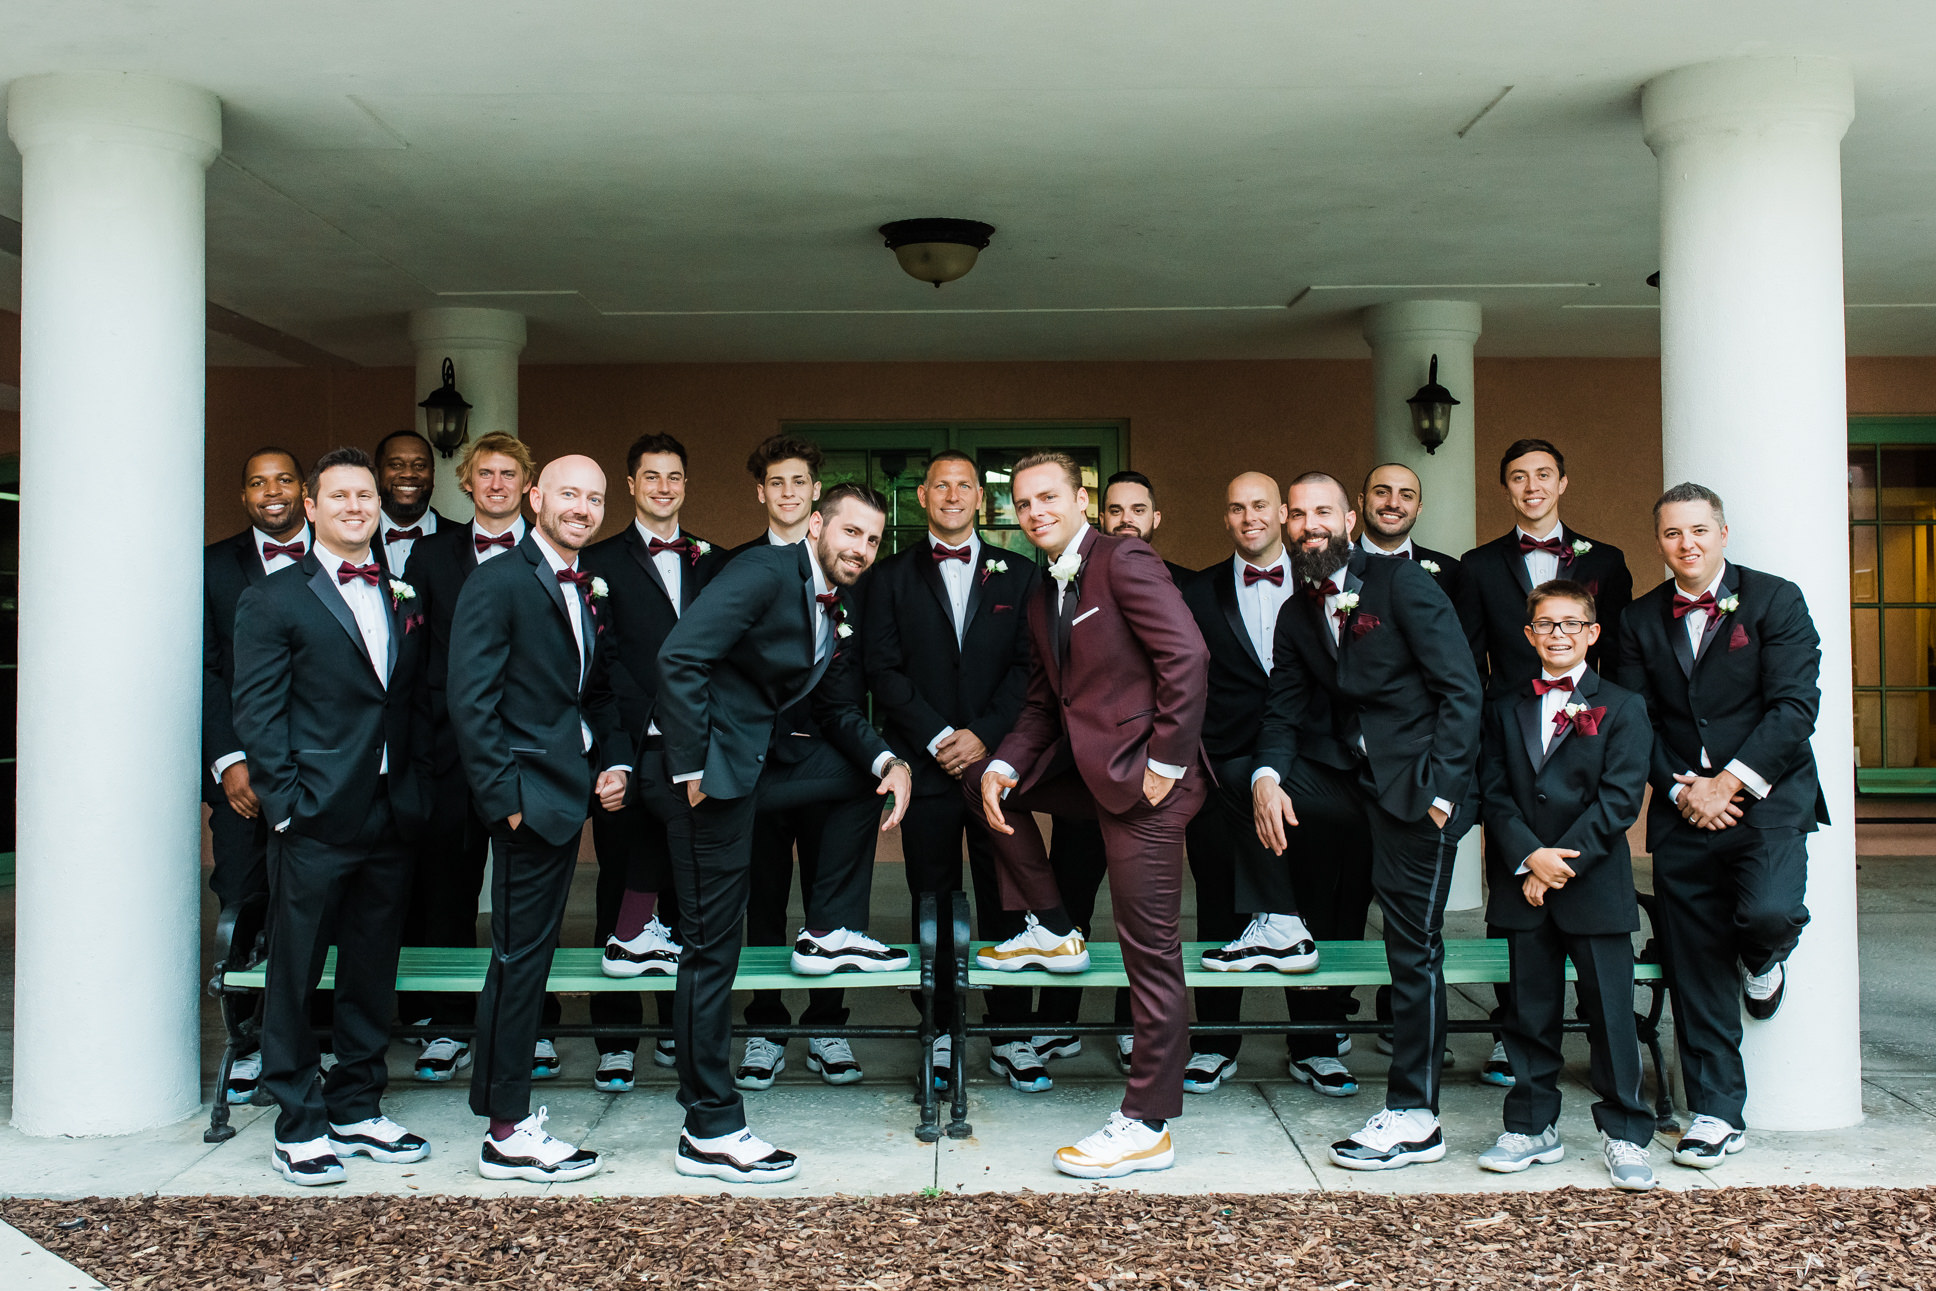 Groom in Burgundy Suit with White and Gold Sneakers, Groomsmen in Black Suits with Matching White and Black Sneakers and Burgundy Bowties Wedding Party Portrait